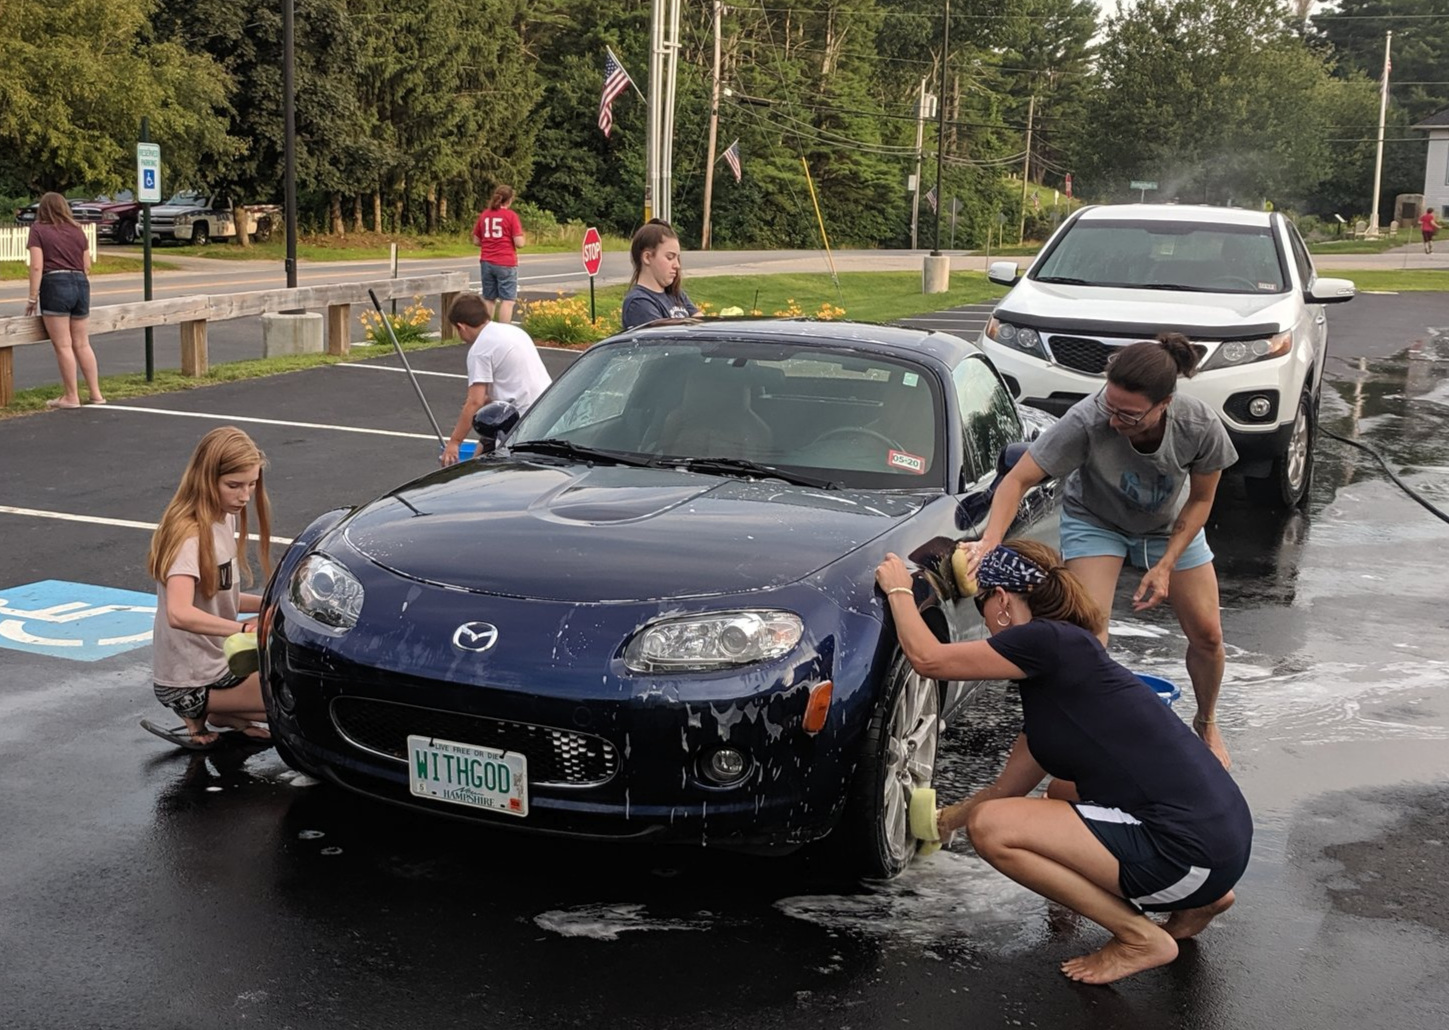 Thank you to everyone who supported the Youth Group car wash for Soulfest!